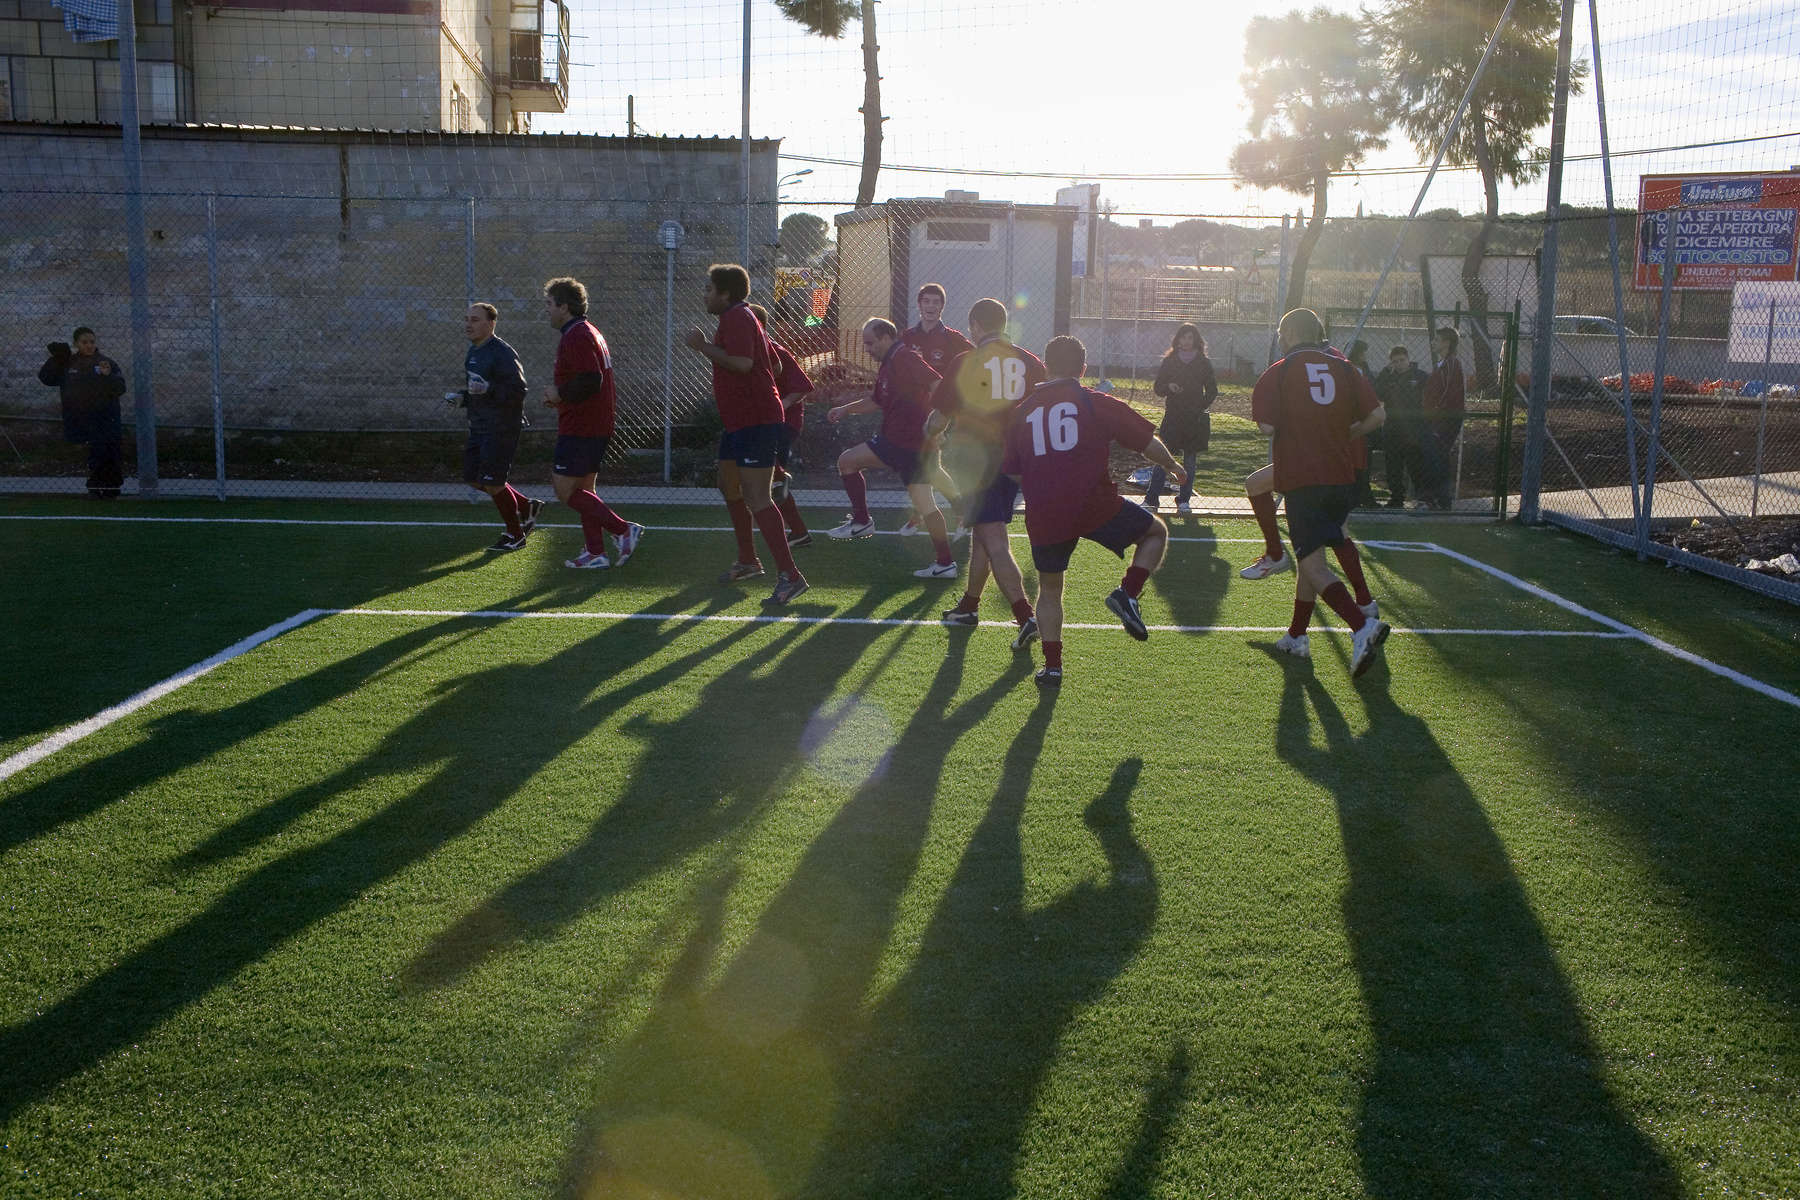 Players of the Gabbiano football club in Rome warm up before a match. Half of the players are schizophrenics. The club performs a startling and successful form of psychiatric therapy. In disaster areas, war zones and urban wastelands, football keeps humanity alive. It brings nations together and promotes unity. It encourages equality and generates pride and self-belief. It has the power to heal and to help, to motivate, to give freedom to dreams and empower a generation. There are millions of people playing the game or helping it to flourish who find that football brings a positive dimension to their lives.Away from the billionaire owned clubs with it's multi-million dollar players, Football's Hidden Story is a series of emotive human interest photographs showing the positive impact football has had at grassroot level on individuals and communities all around the world.